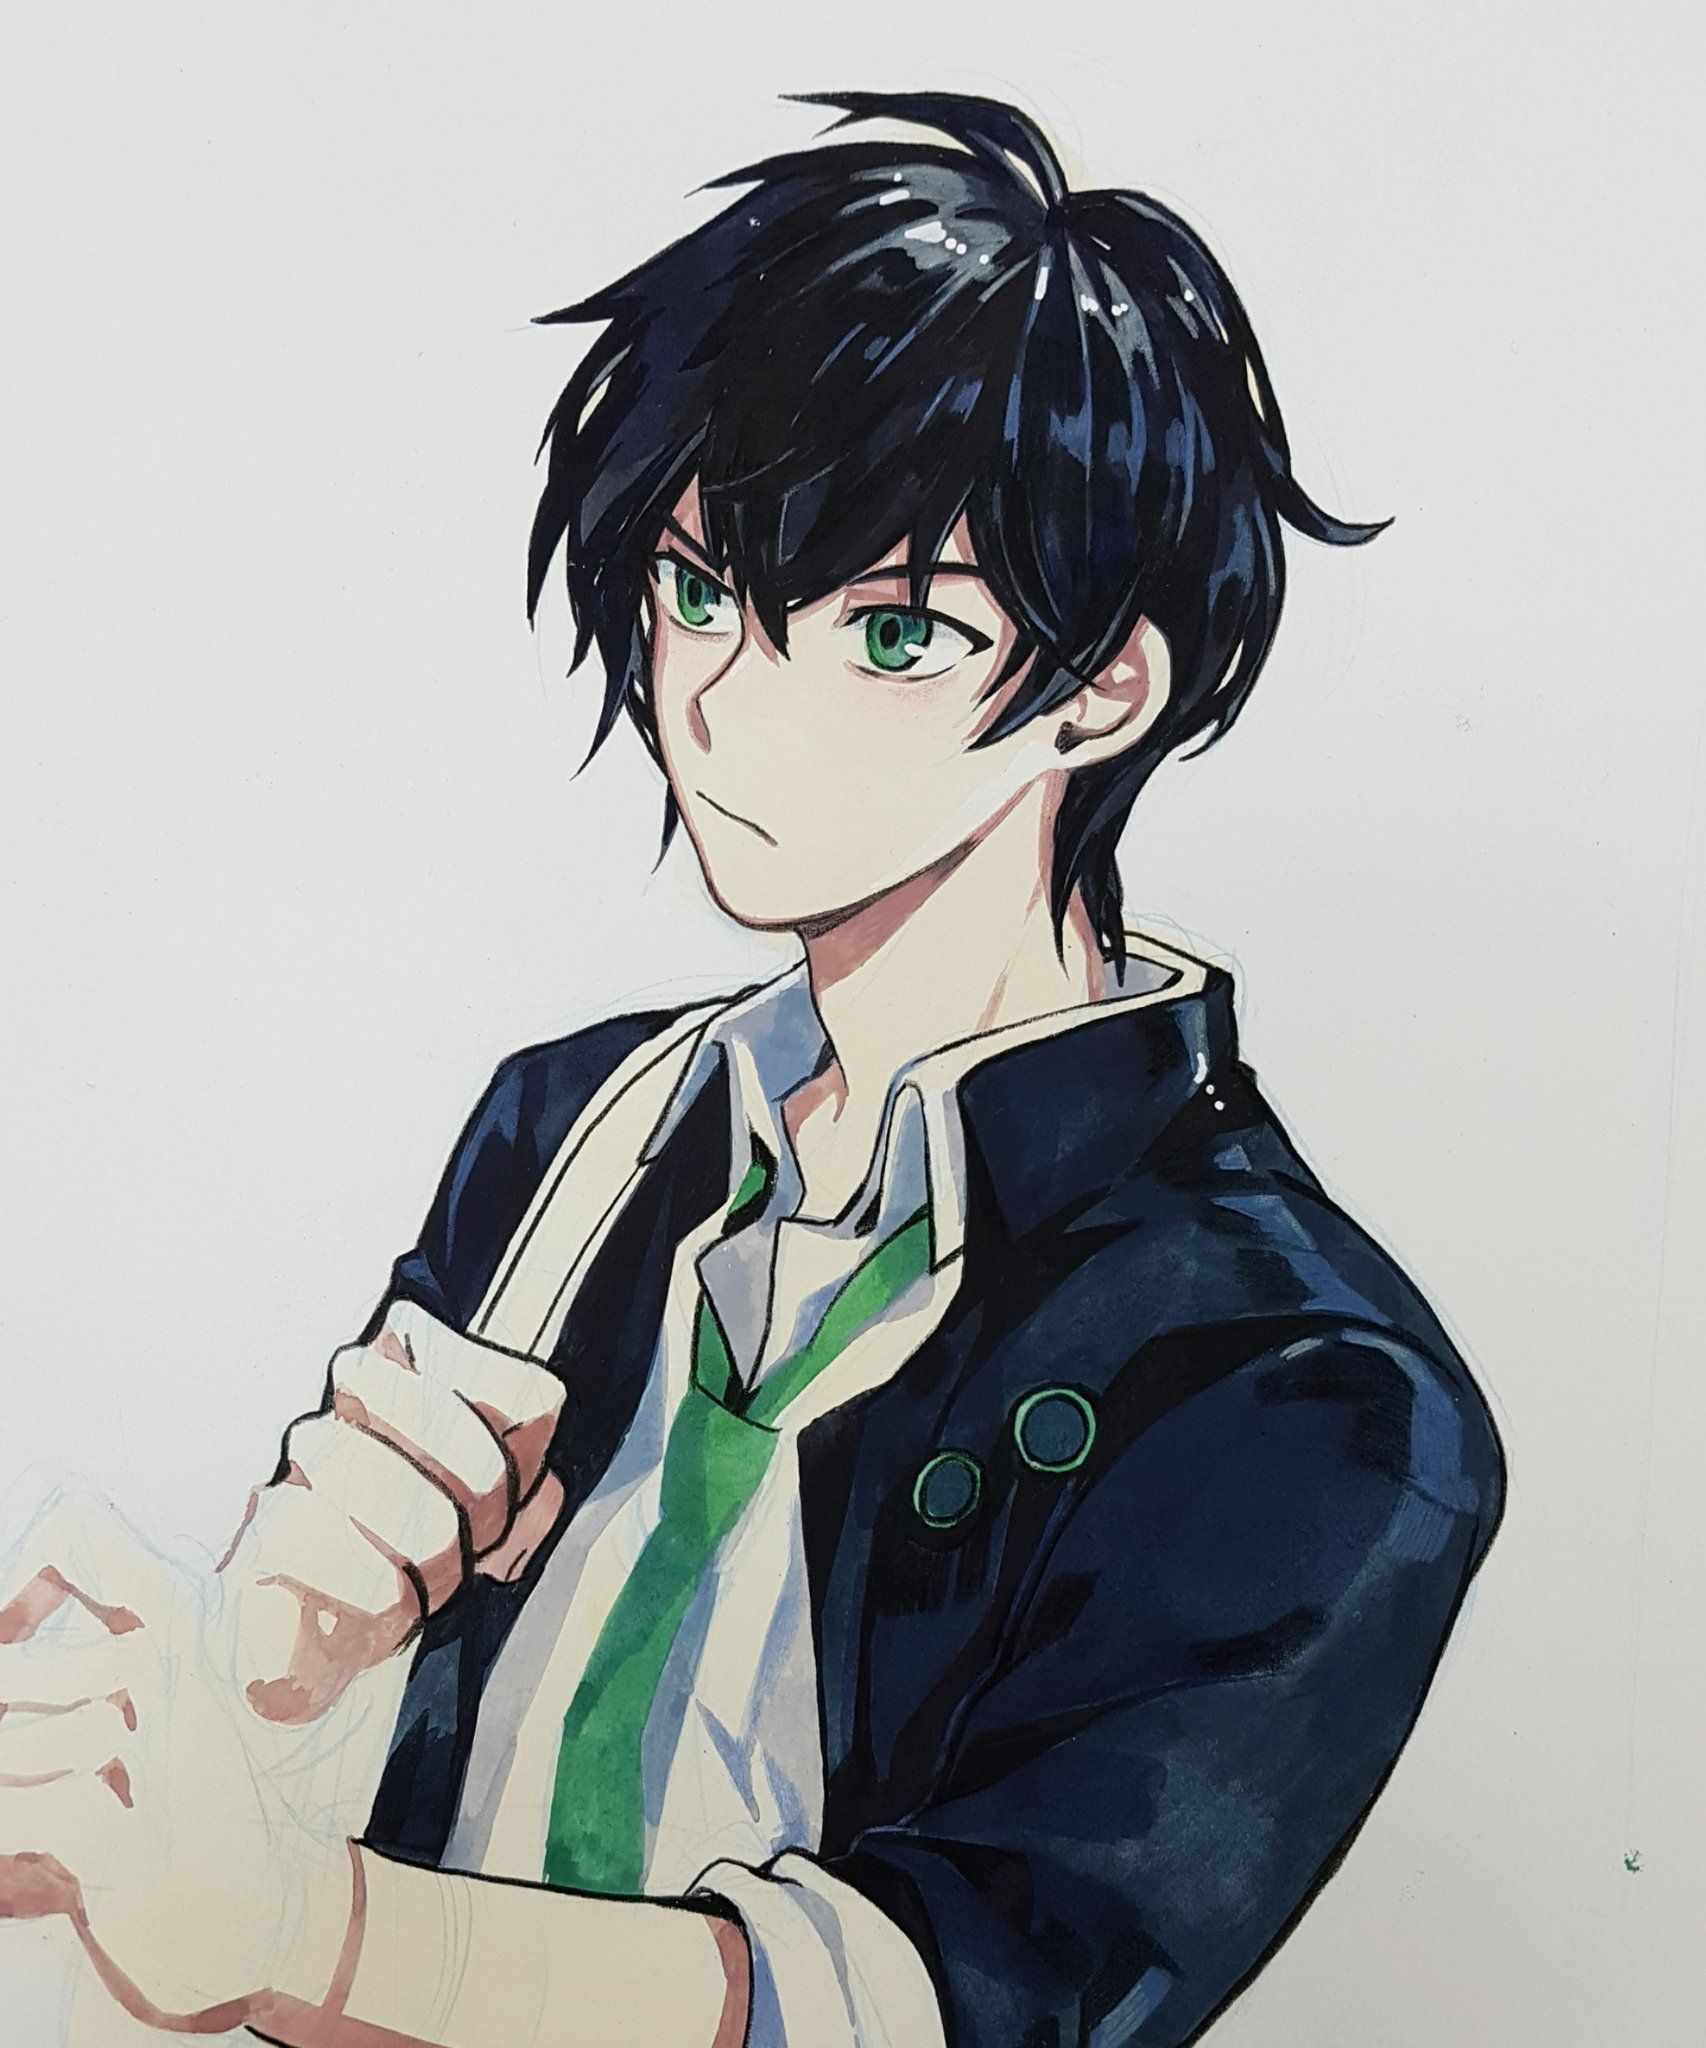 Anime guy black hair green eyes green tie school uniform formal